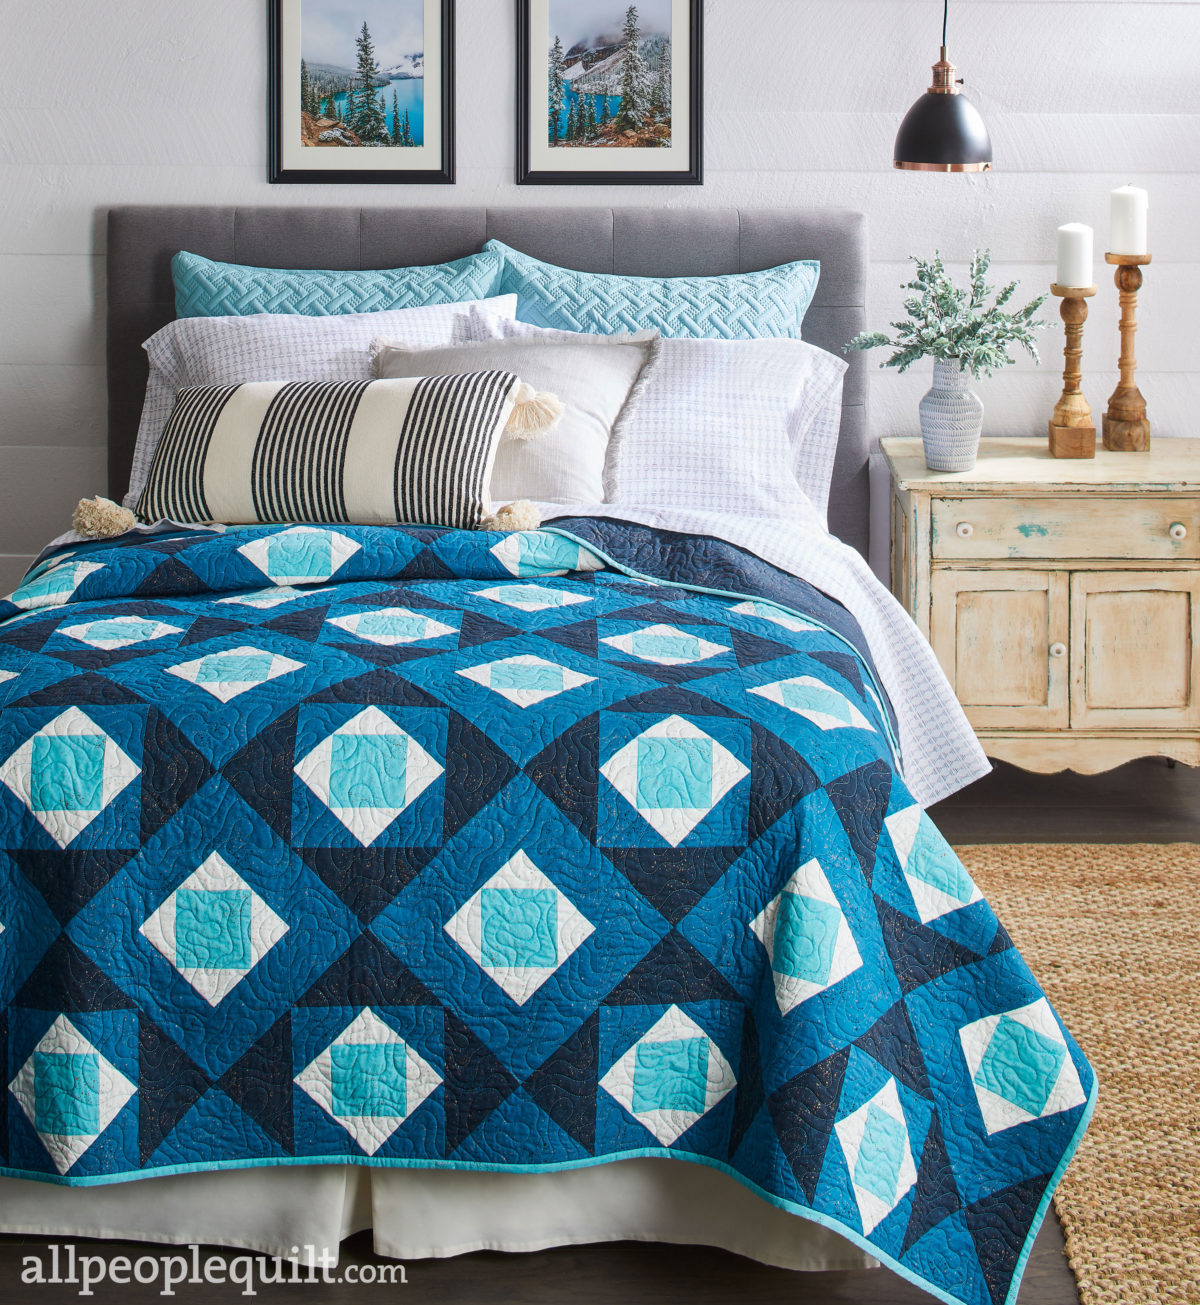 Winter Frost Quilt, Styled on Bed, Quilts & More Magazine Winter 2021 Issue